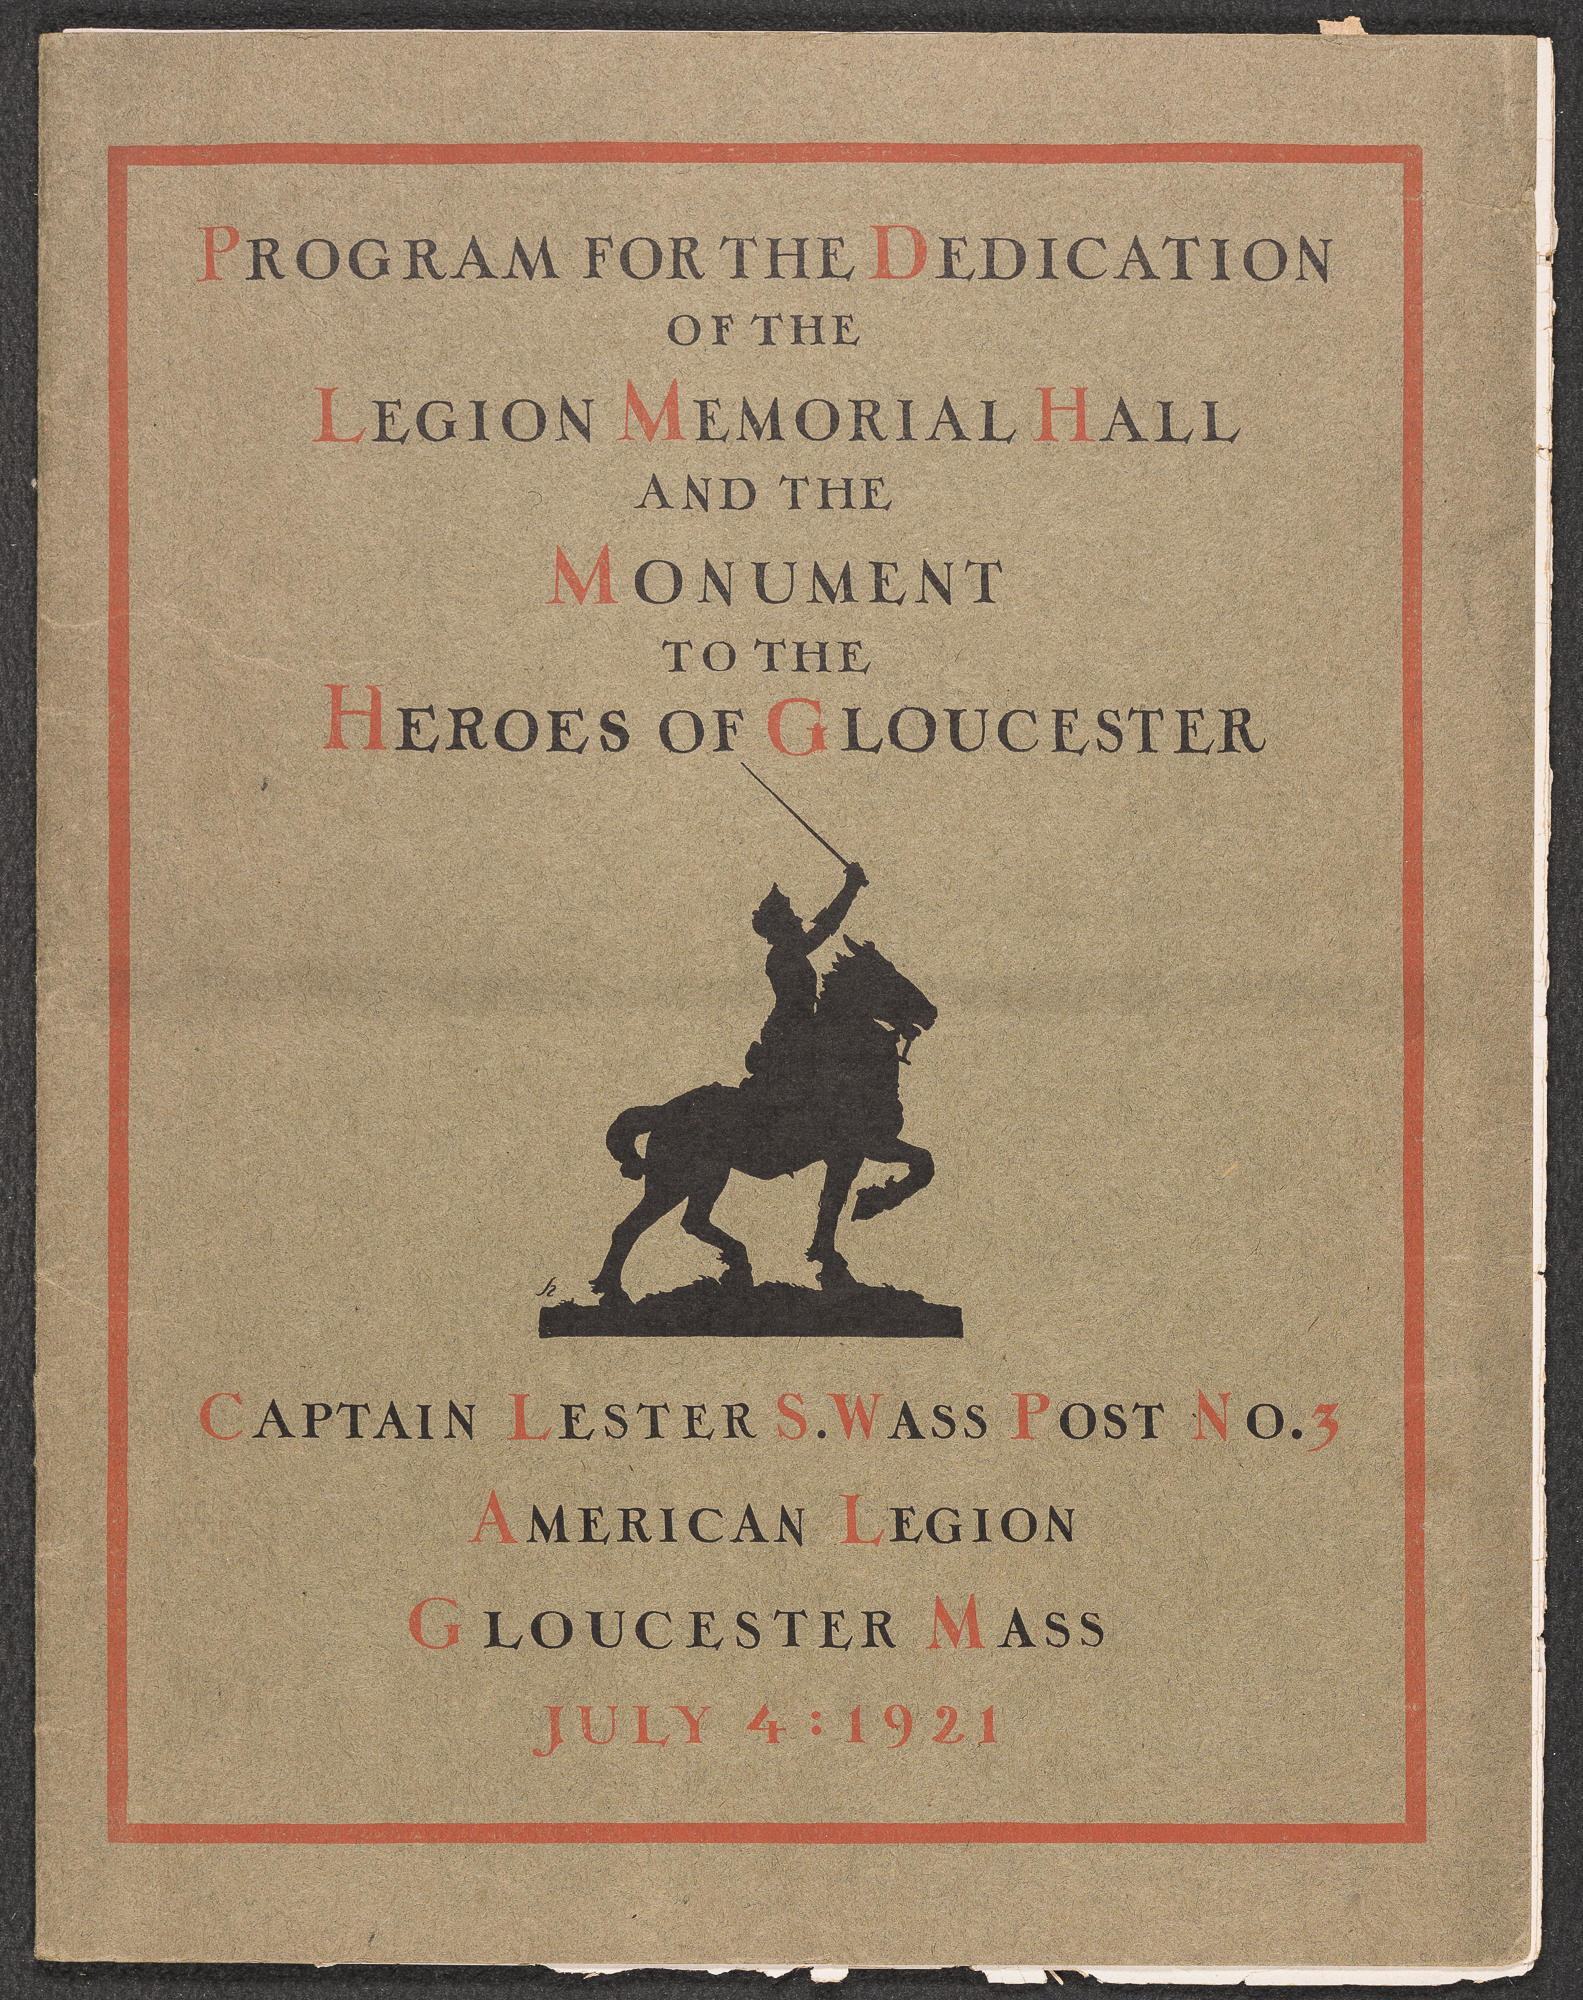 An old weathered program for the Dedication of Legion Memorial Hall